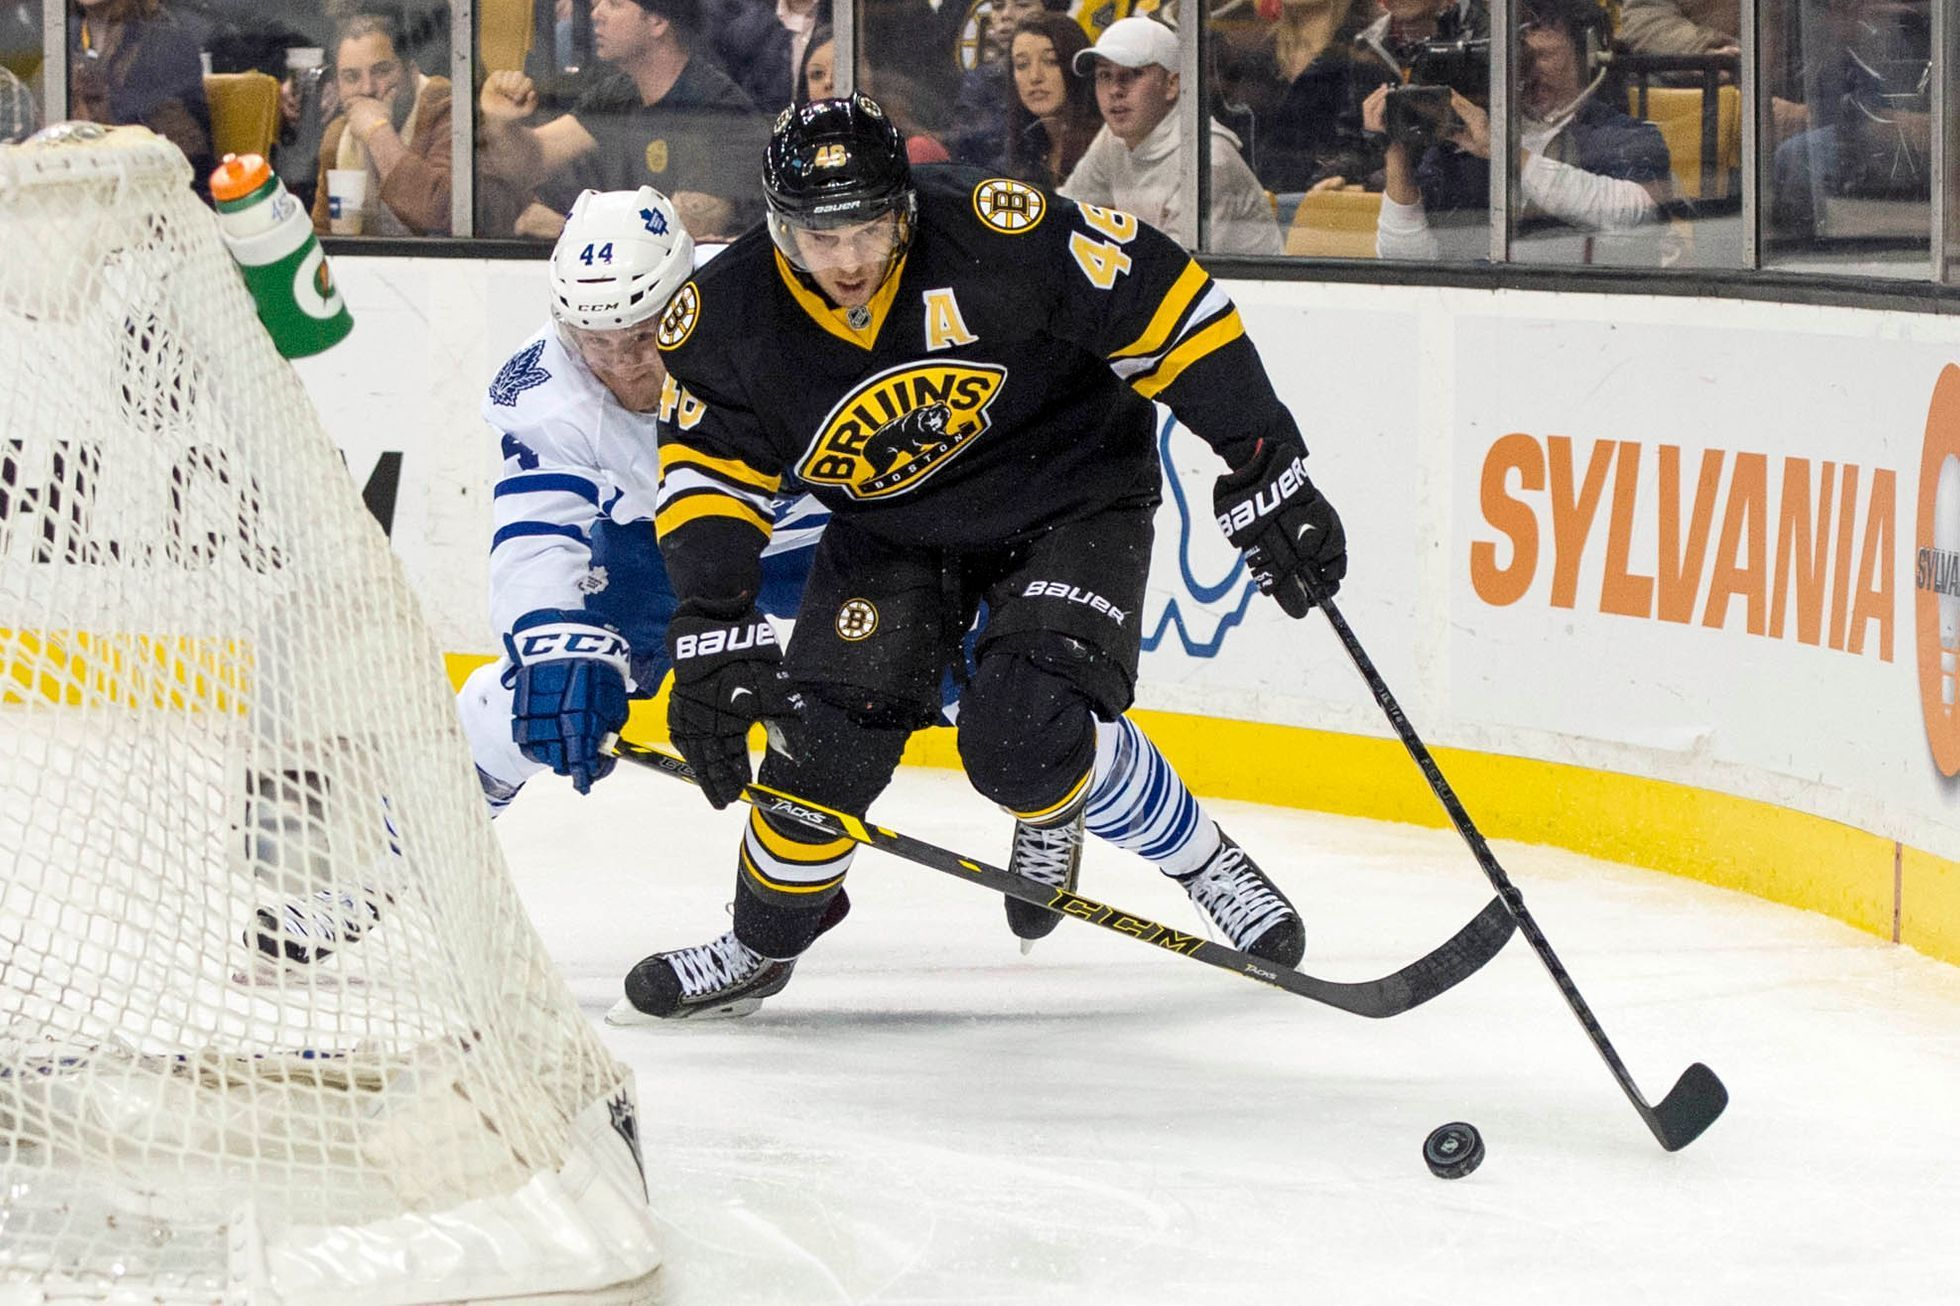 NHL: Toronto Maple Leafs at Boston Bruins